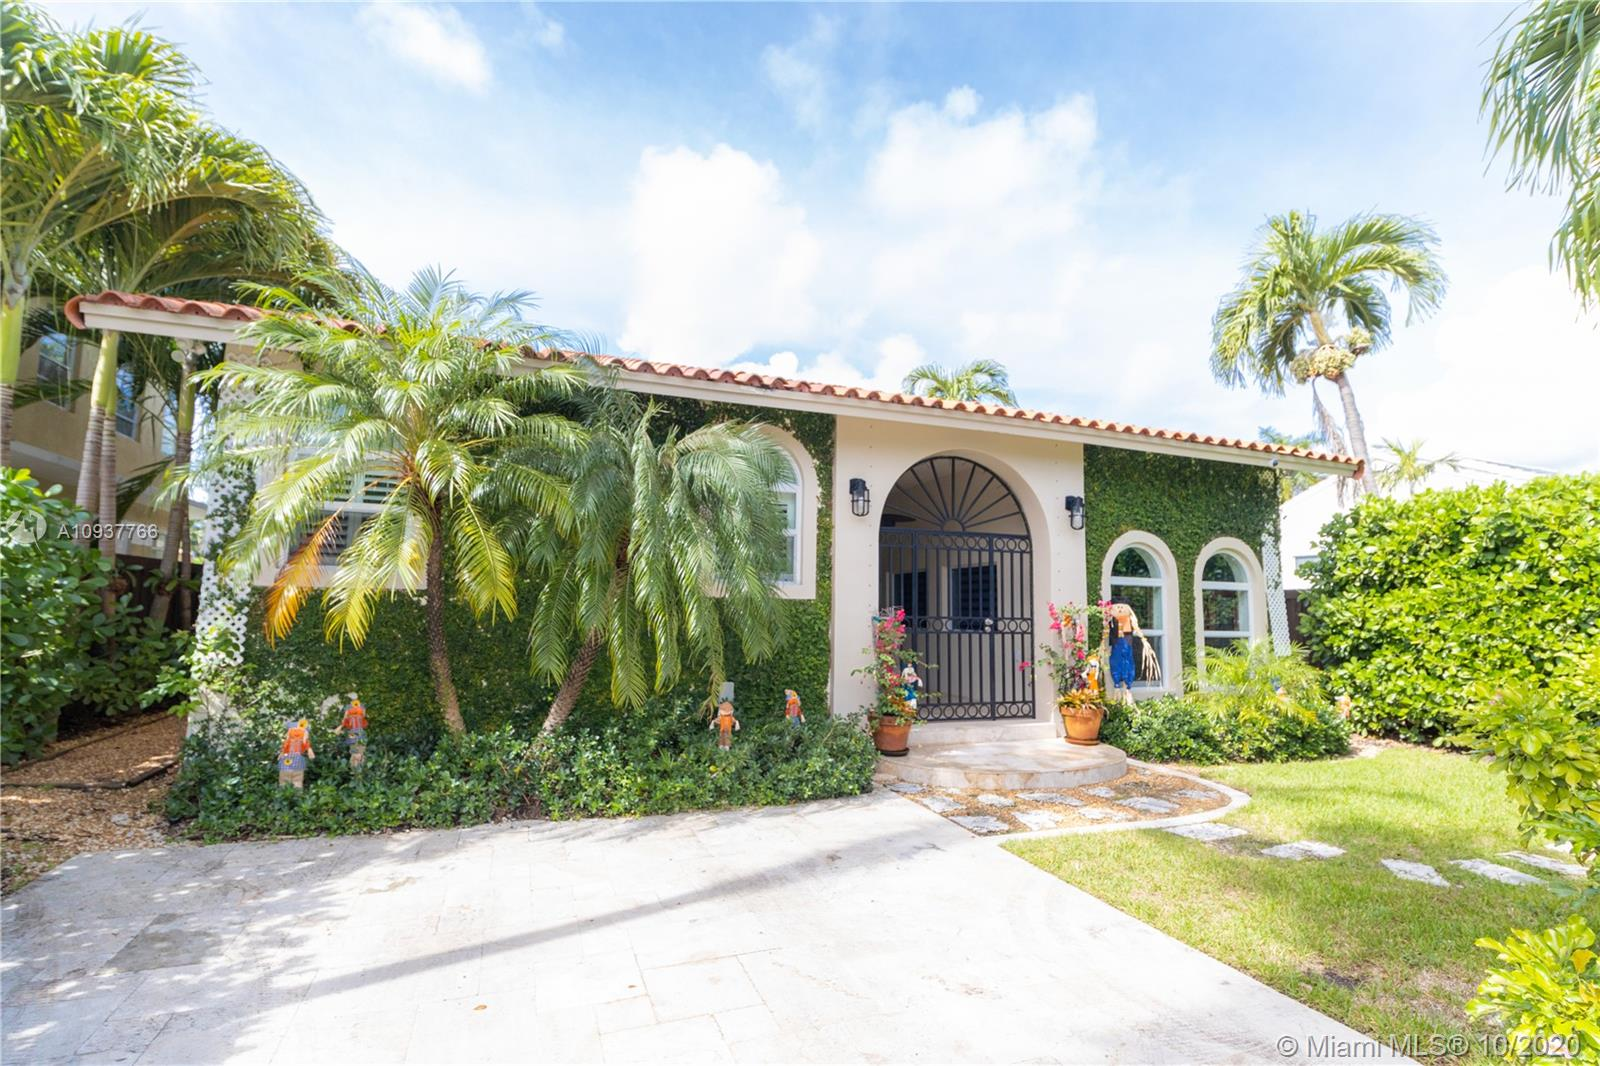 3550 Crystal Ct, Miami, Florida 33133, 3 Bedrooms Bedrooms, ,4 BathroomsBathrooms,Residential,For Sale,3550 Crystal Ct,A10937766